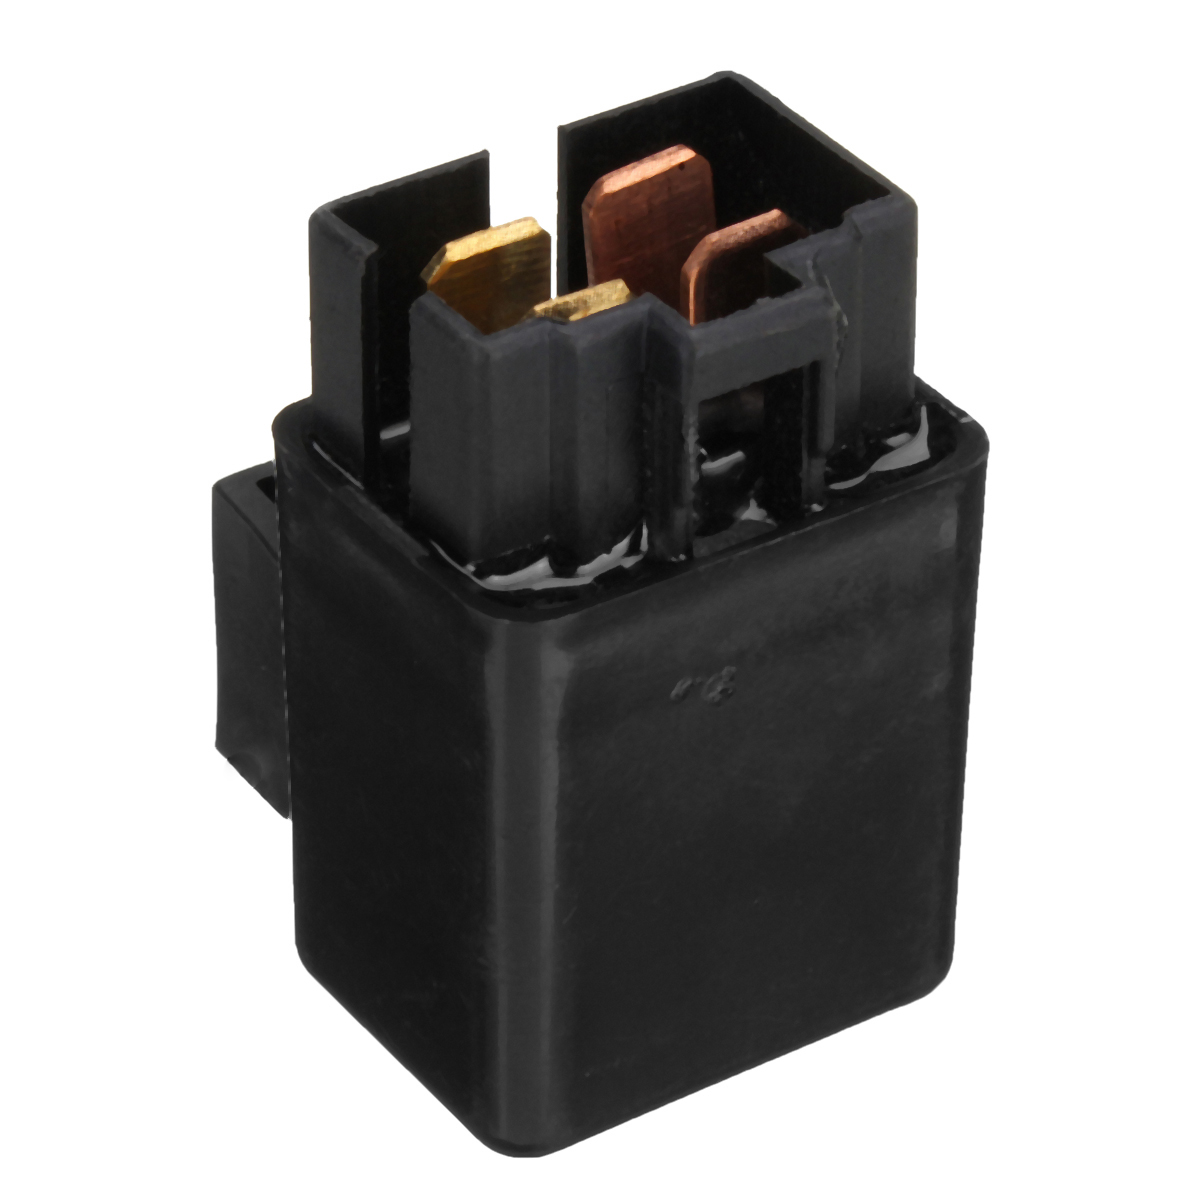 Image 4 - Starter Relay Solenoid Replacement for Yamaha 29U 81950 92 00 29U 81950 93 00-in Motorbike Ingition from Automobiles & Motorcycles